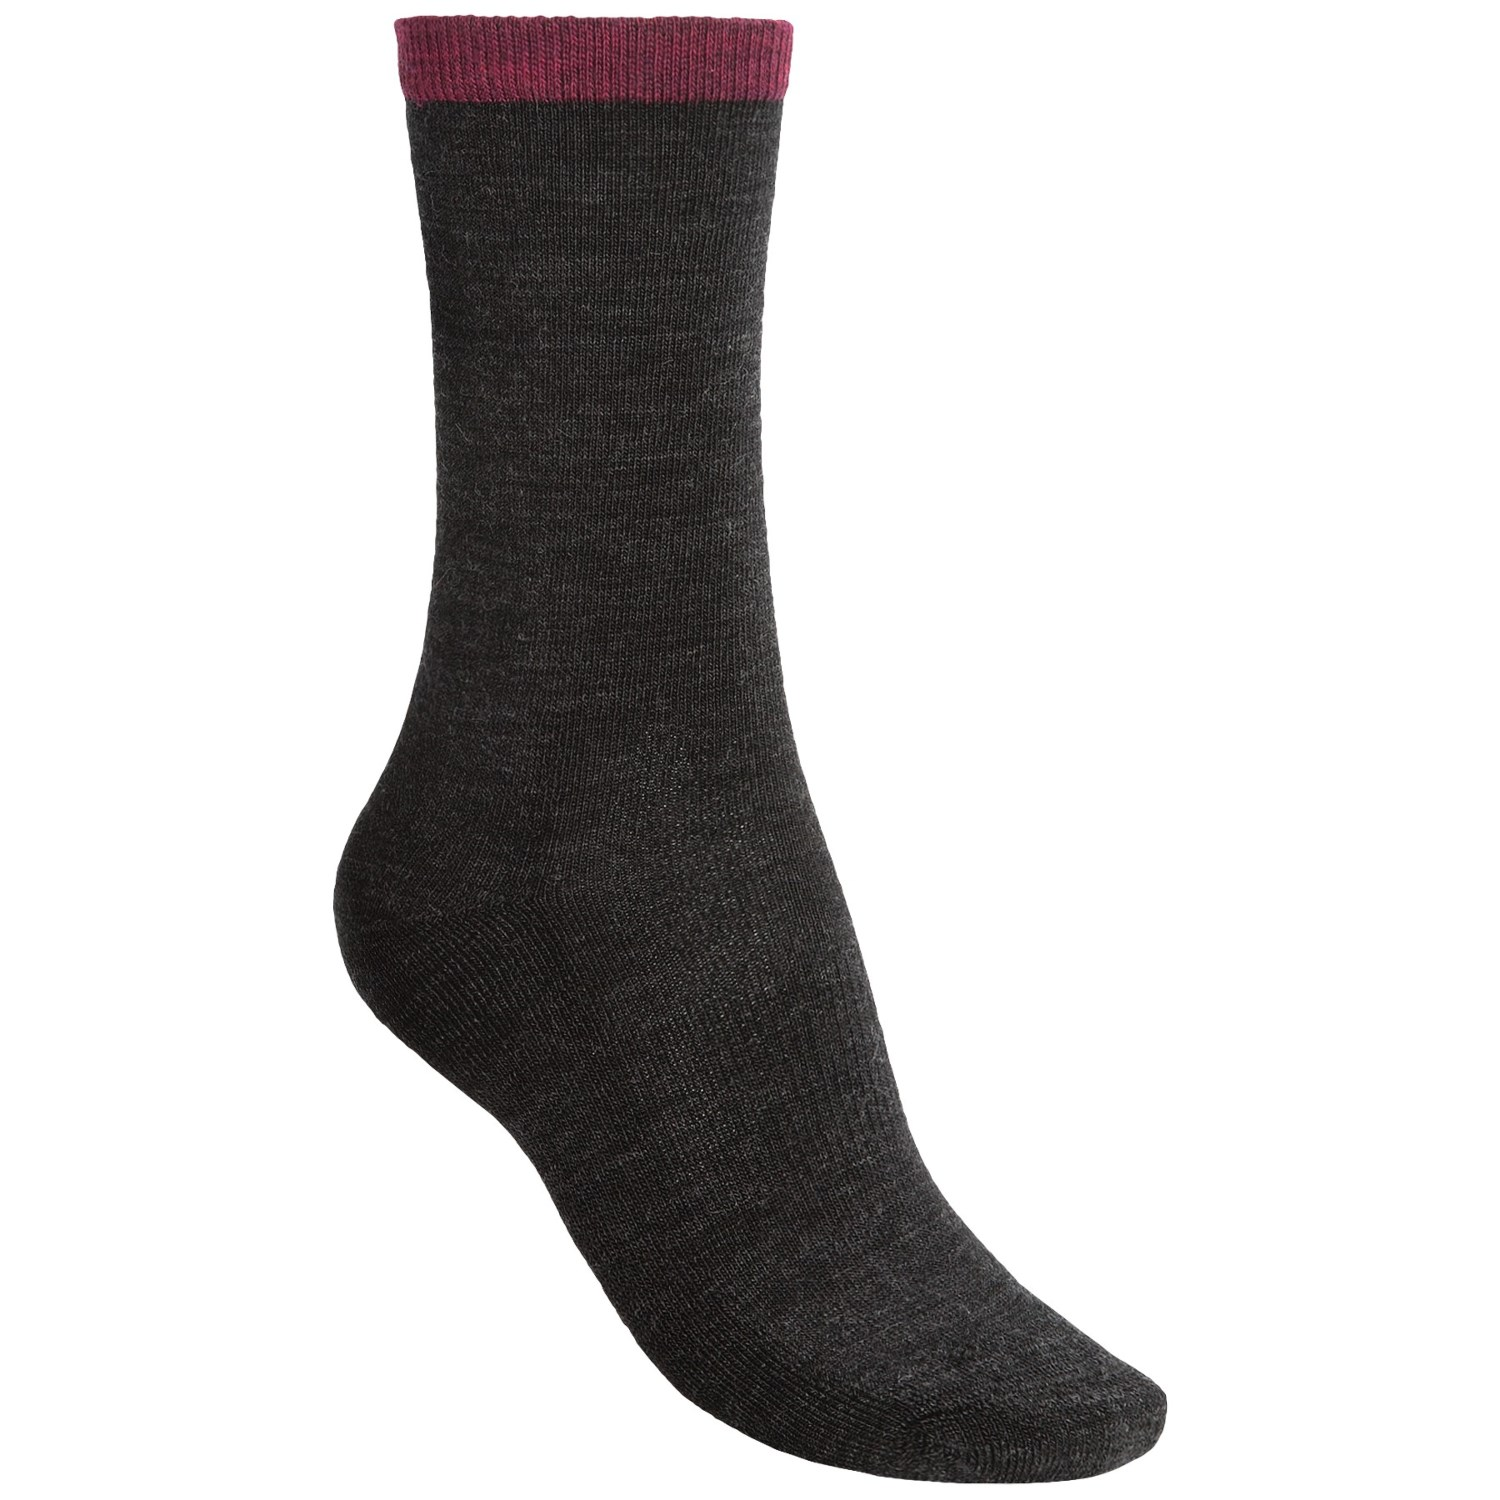 Soft & comfy Merino blend women's wool socks. Extraordinary fit. Keep feet warm in style. Breathable, machine washable, odor control. Free shipping.